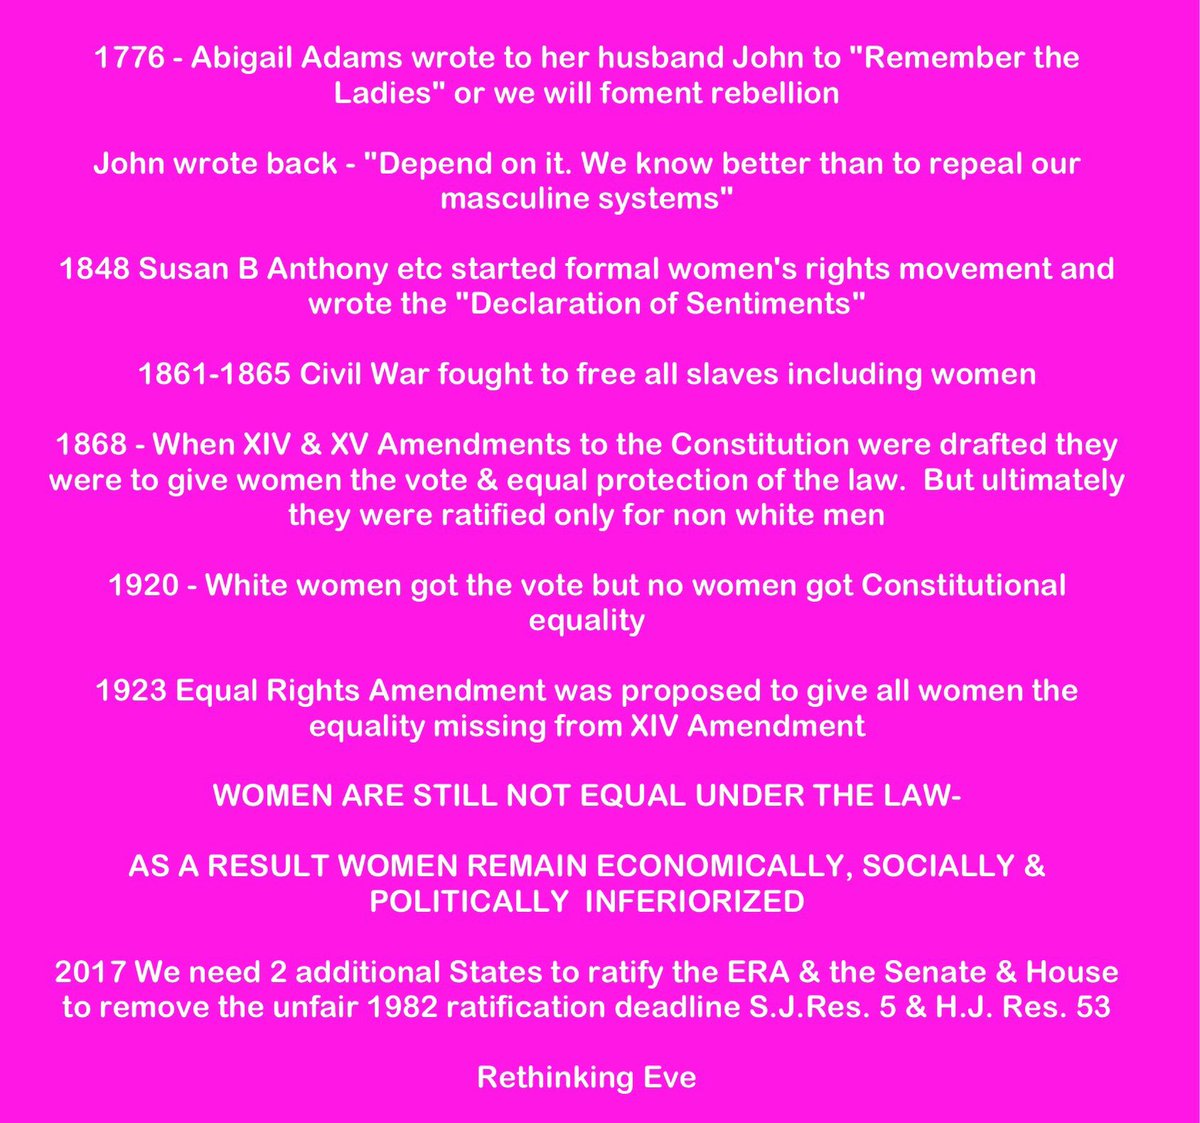 kamala lopez kamalalopez twitter saundraceo need you on board to get era ratified it is legal to discriminate against women eraaction equalmeansequalpic twitter com as52qkgqvq